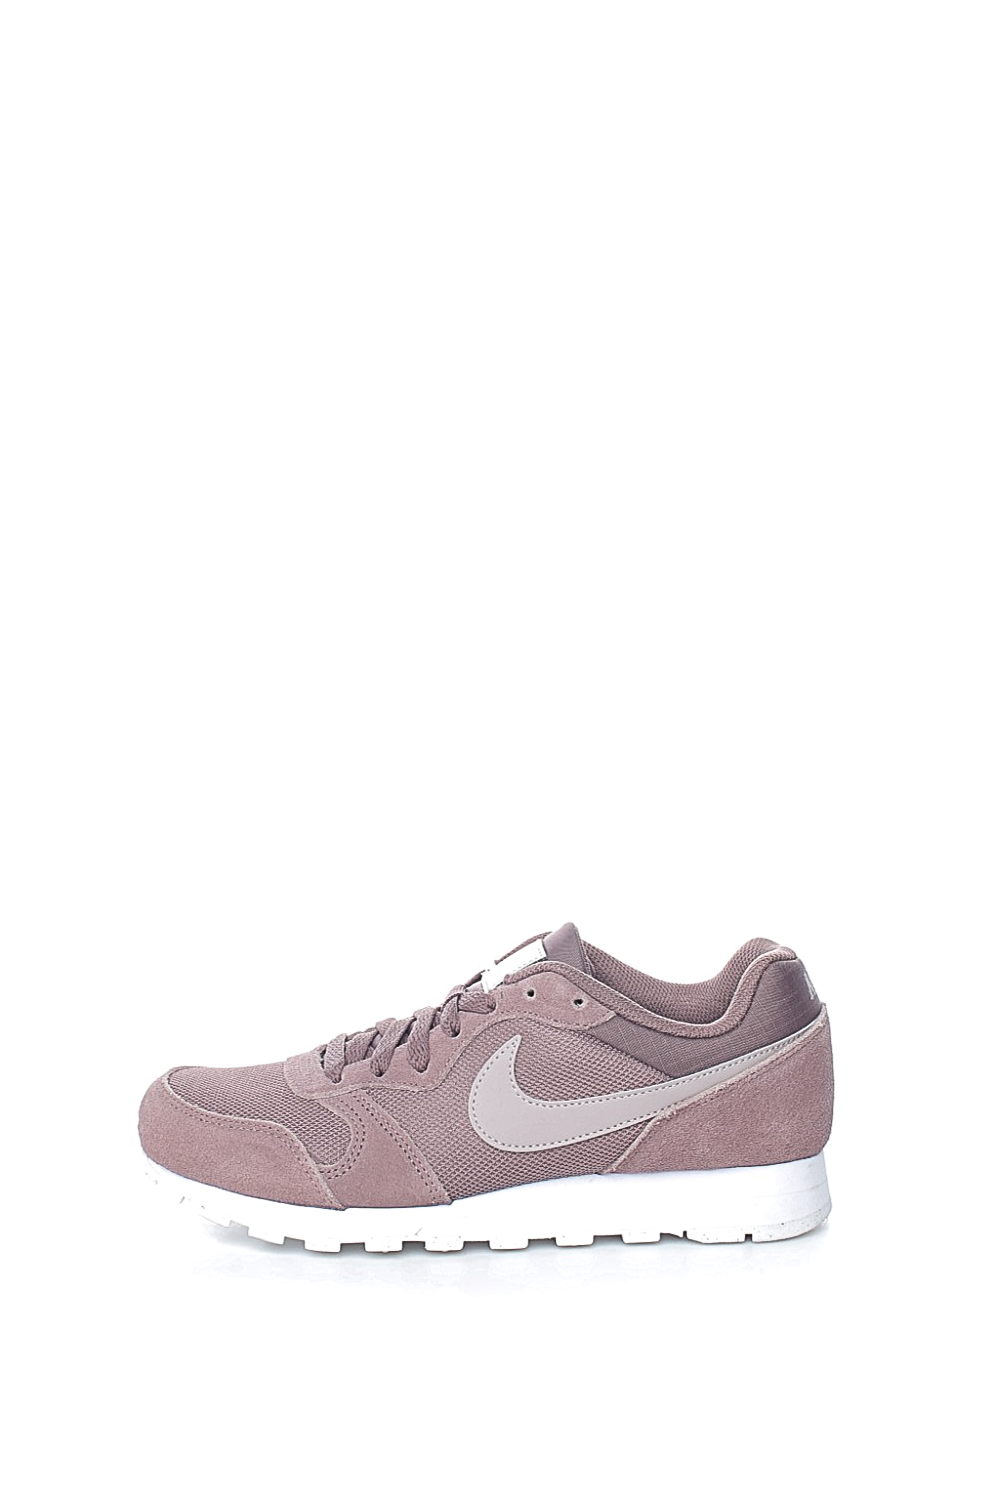 95c8761c4b4 Collective Online NIKE – Γυναικεία sneakers NIKE MD RUNNER 2 μοβ